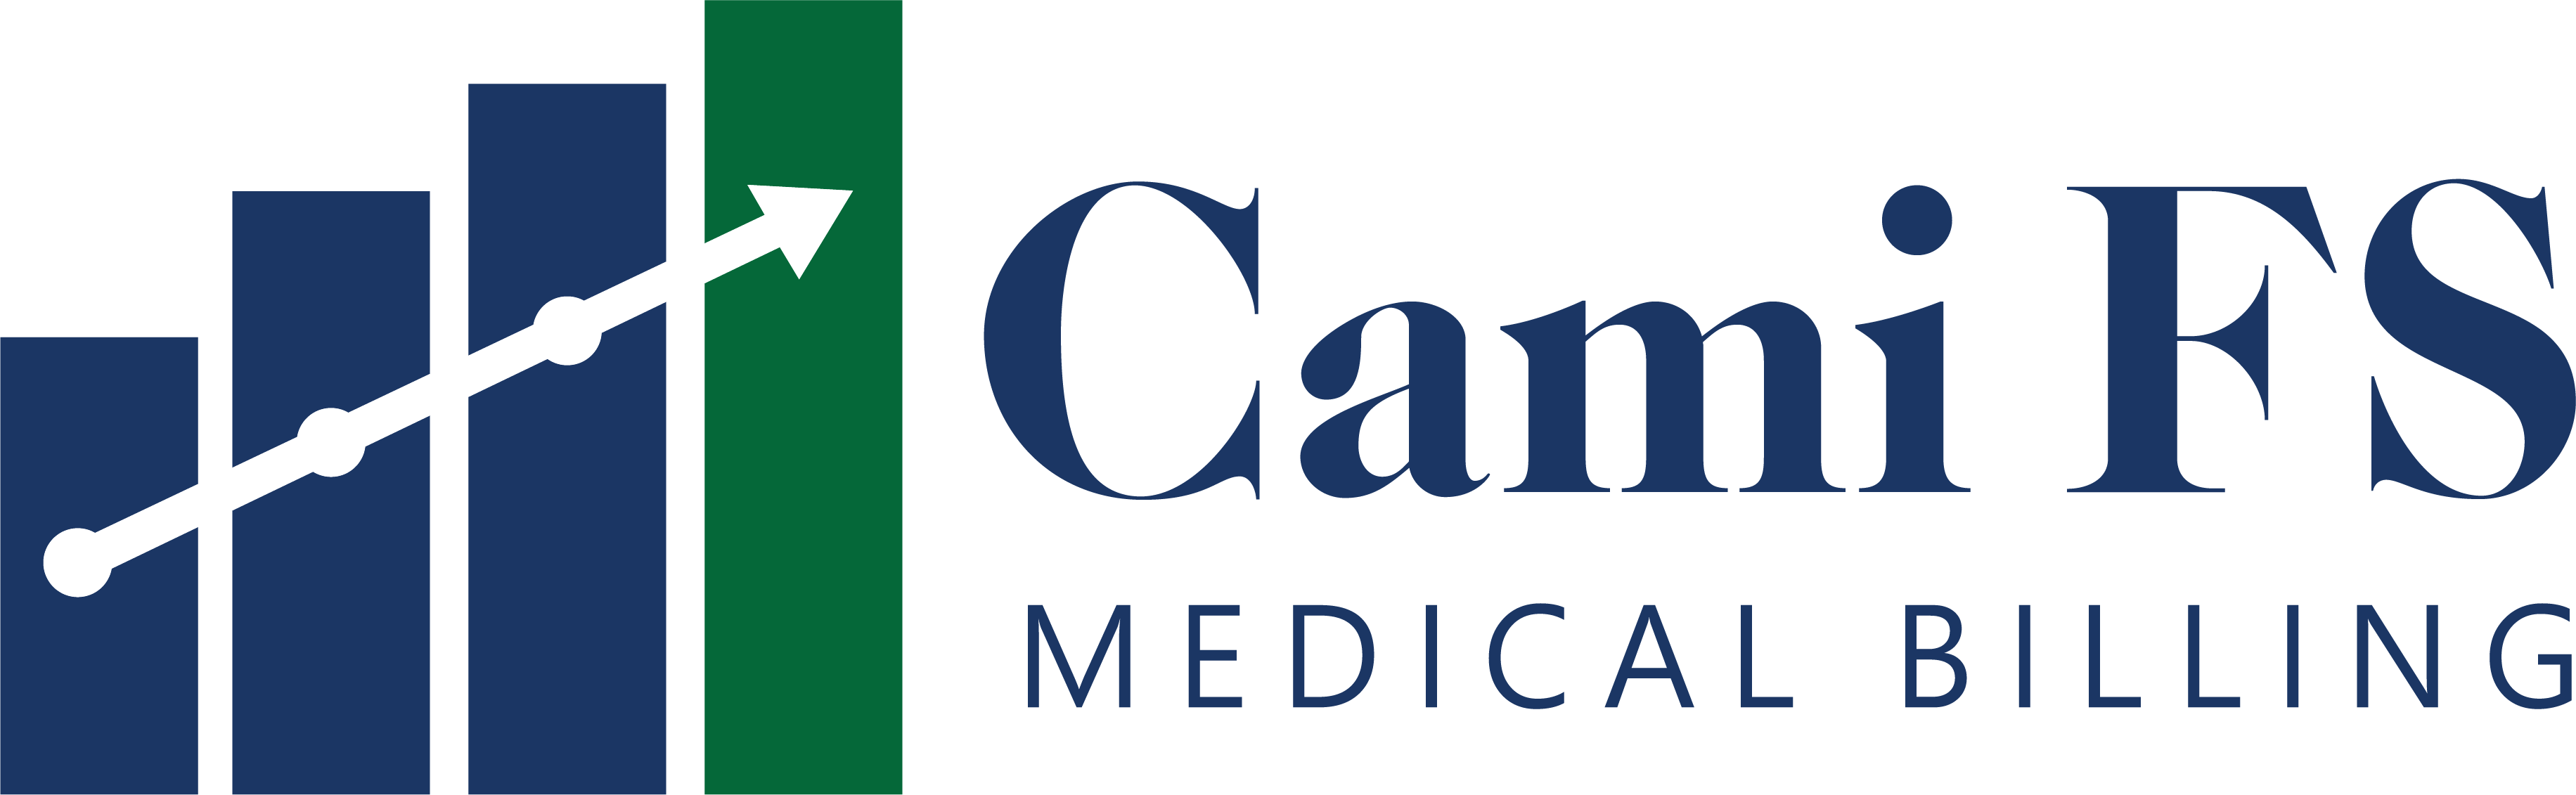 CAMI FS Medical Billing